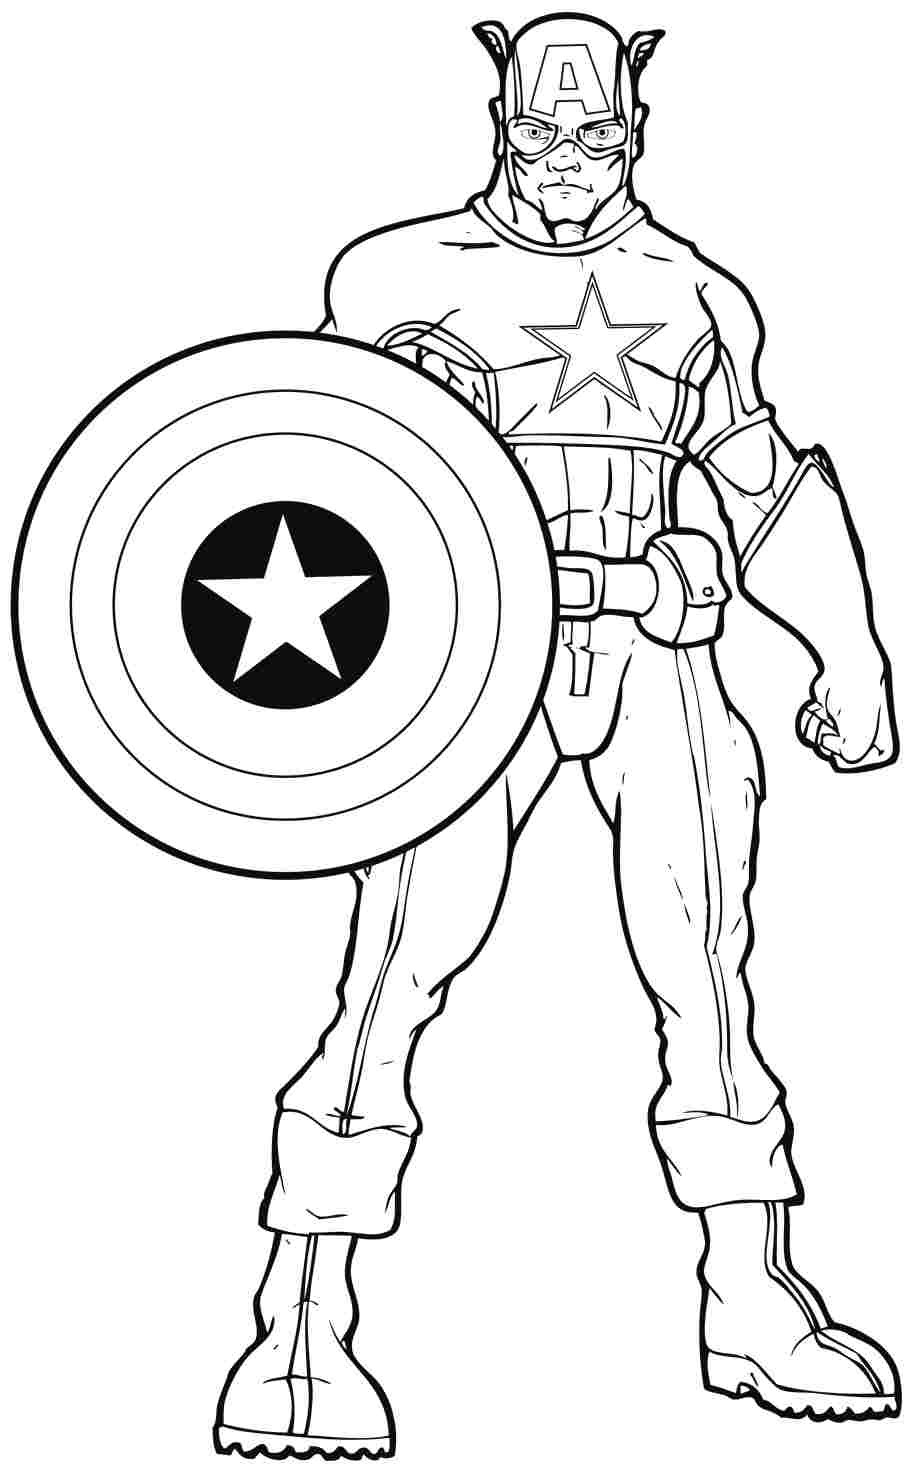 Coloring Pages For Boys Marvel  Dc ics superhero coloring pages ColoringStar